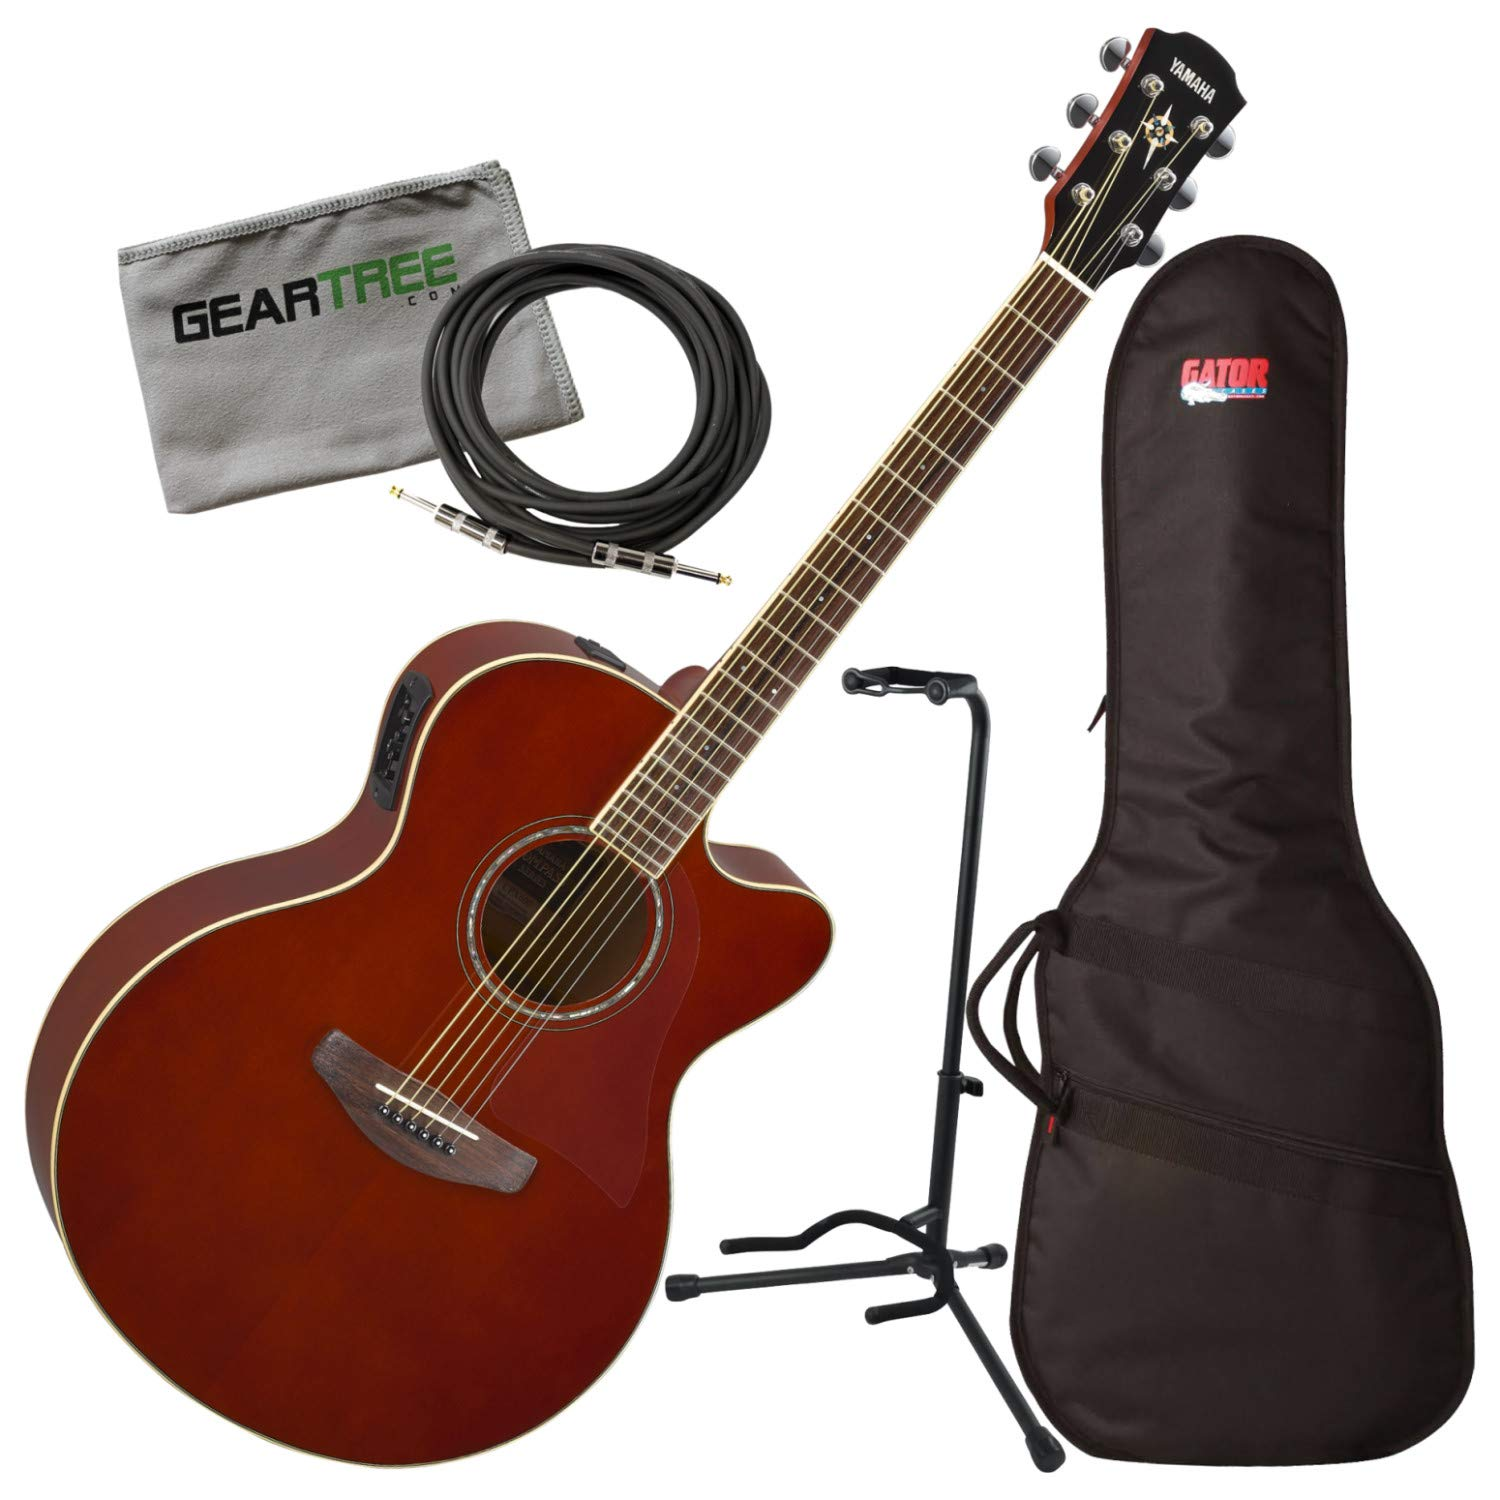 Amazon.com: Yamaha CPX600 Medium Jumbo Root Beer Acoustic-Electric Guitar w/Bag, Stand, Clot: Musical Instruments